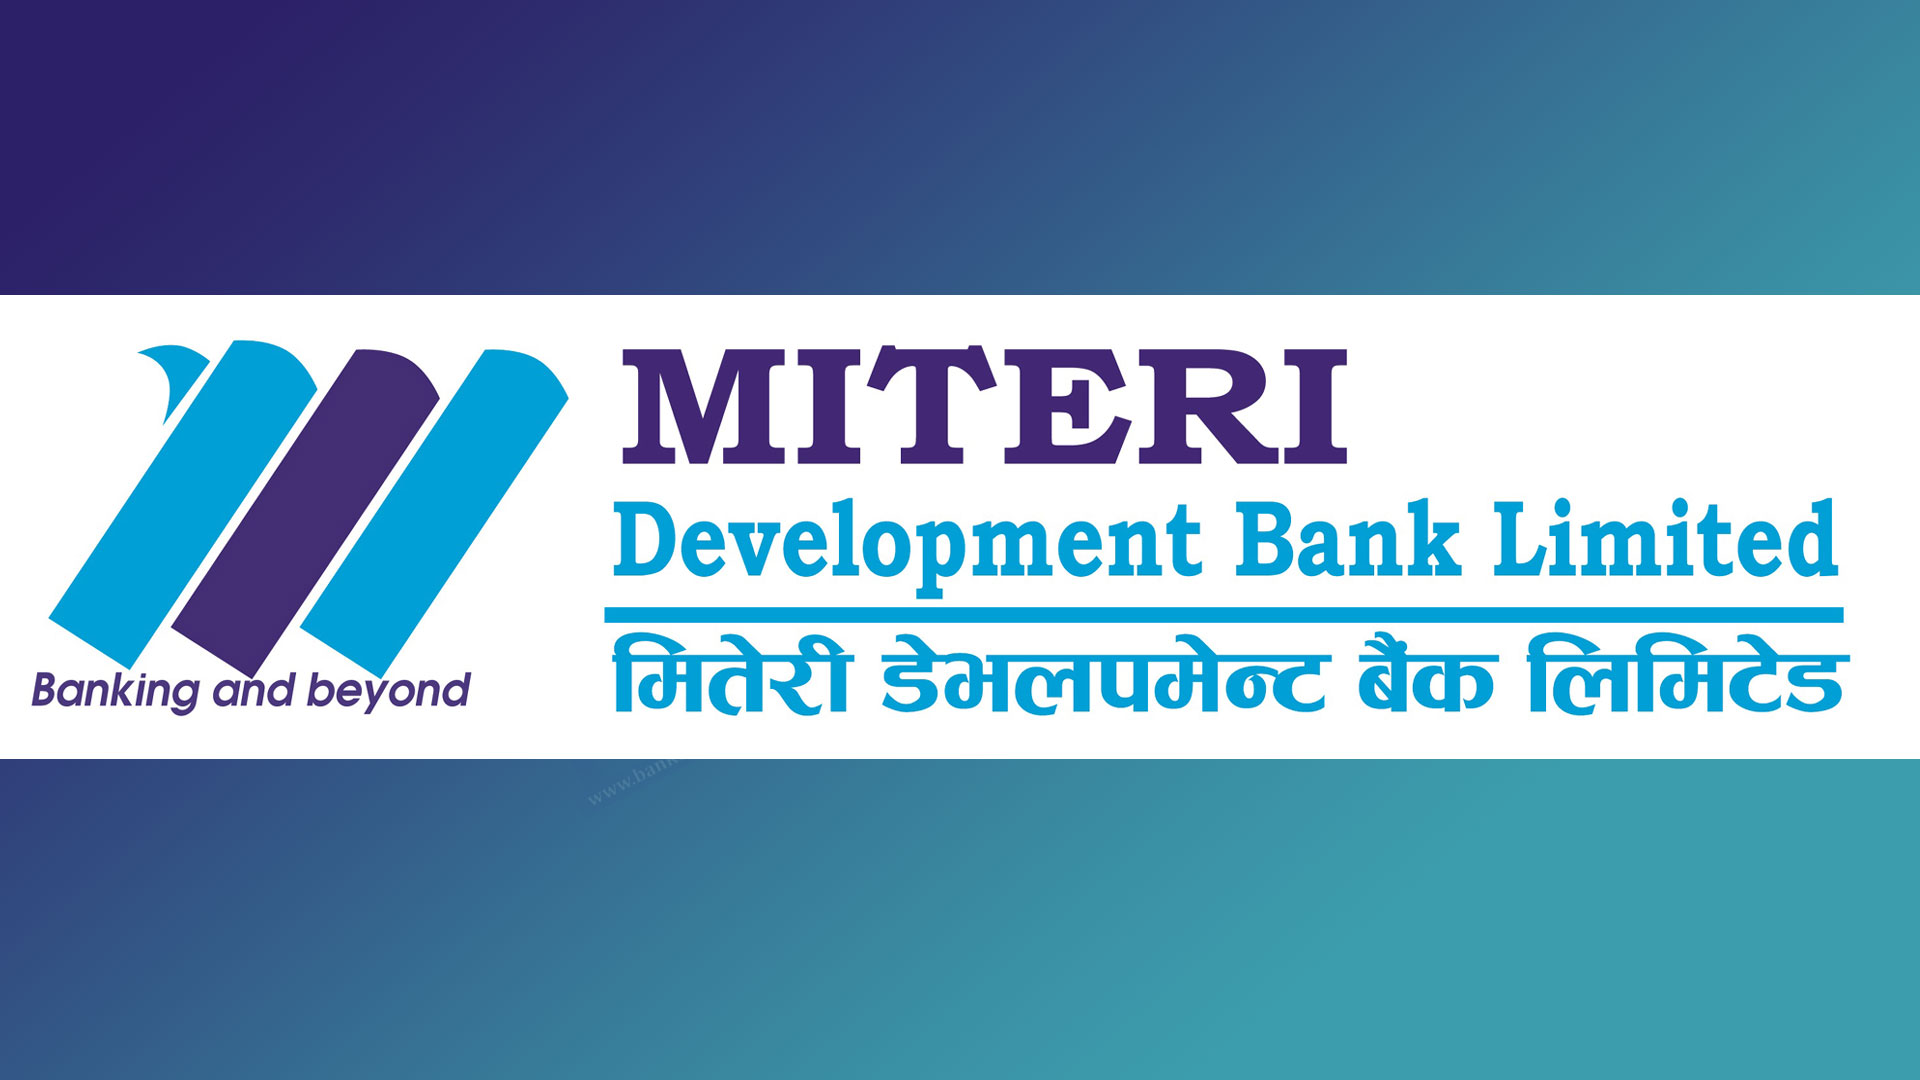 Miteri Development Bank